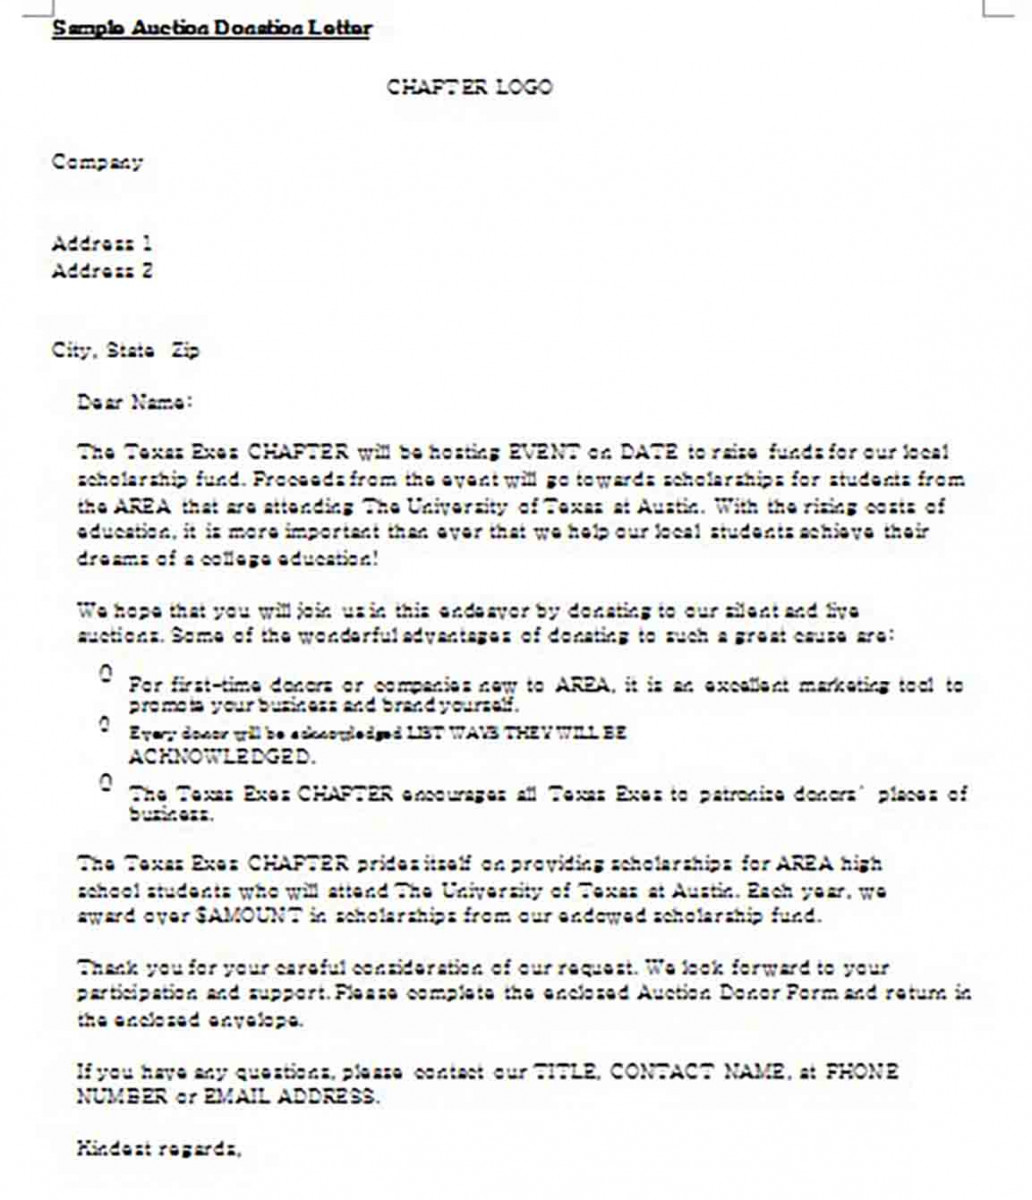 Example of Company Donation Letter